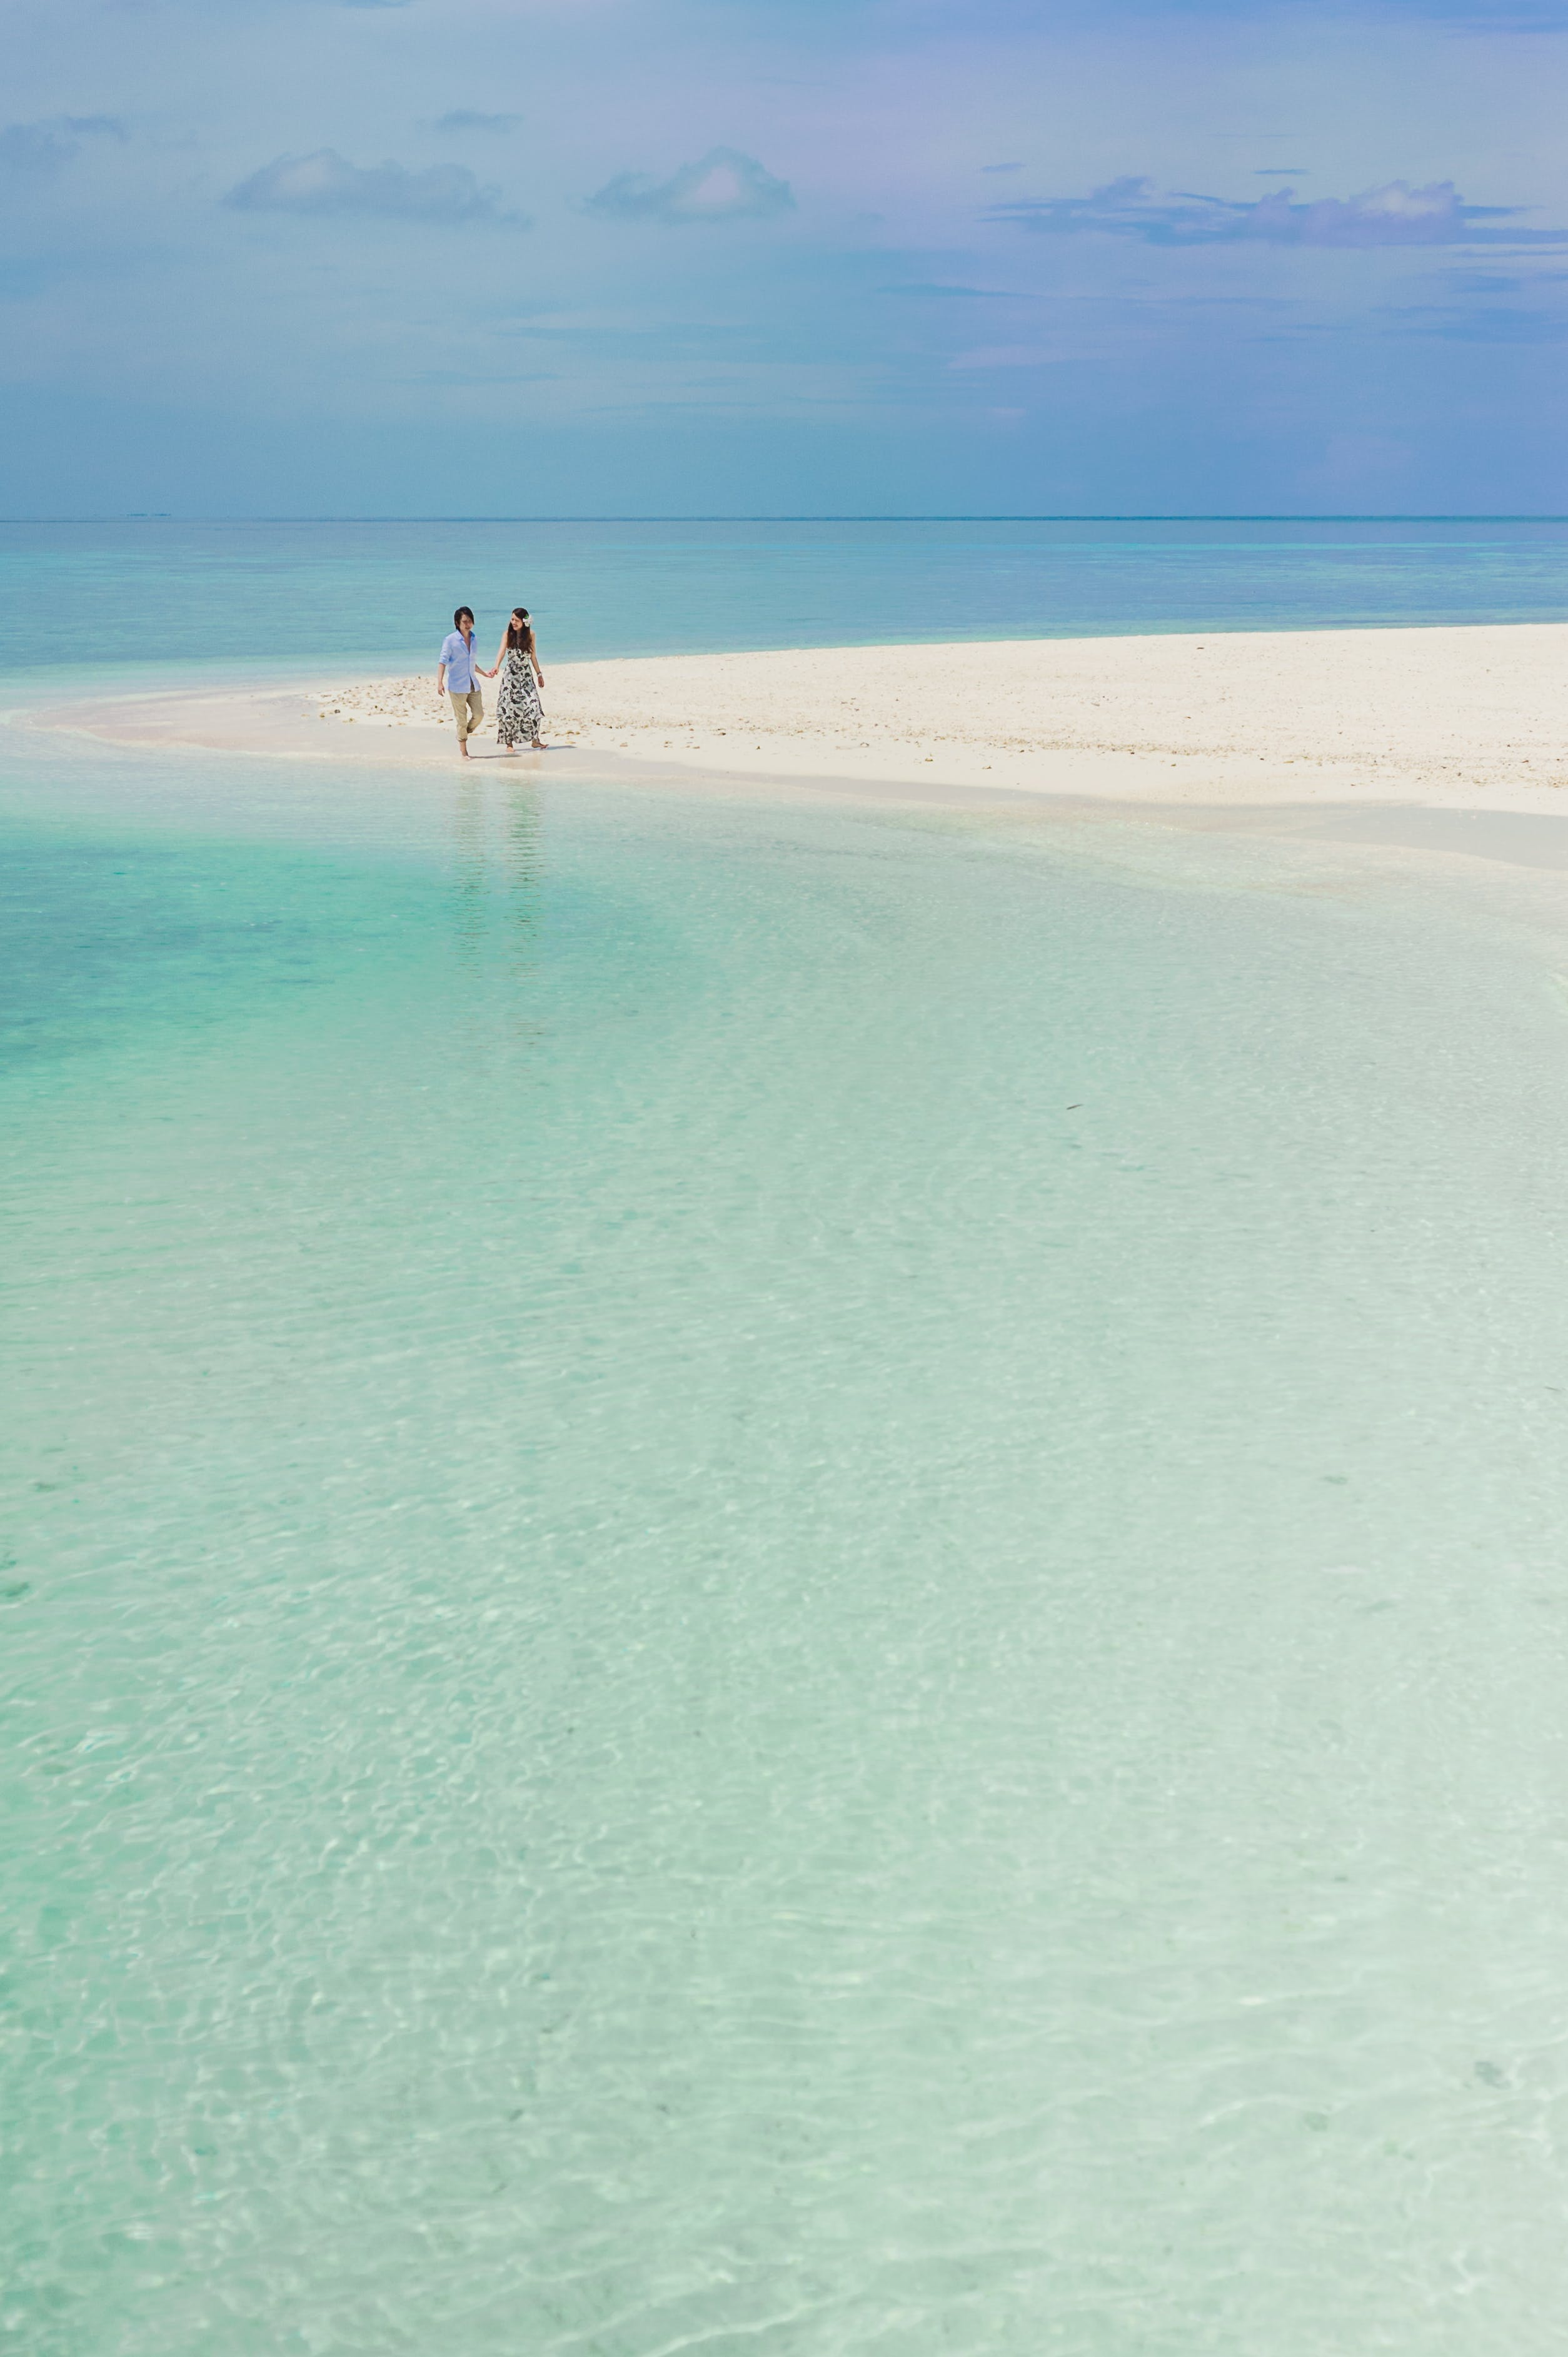 Two Person Walking on Beach